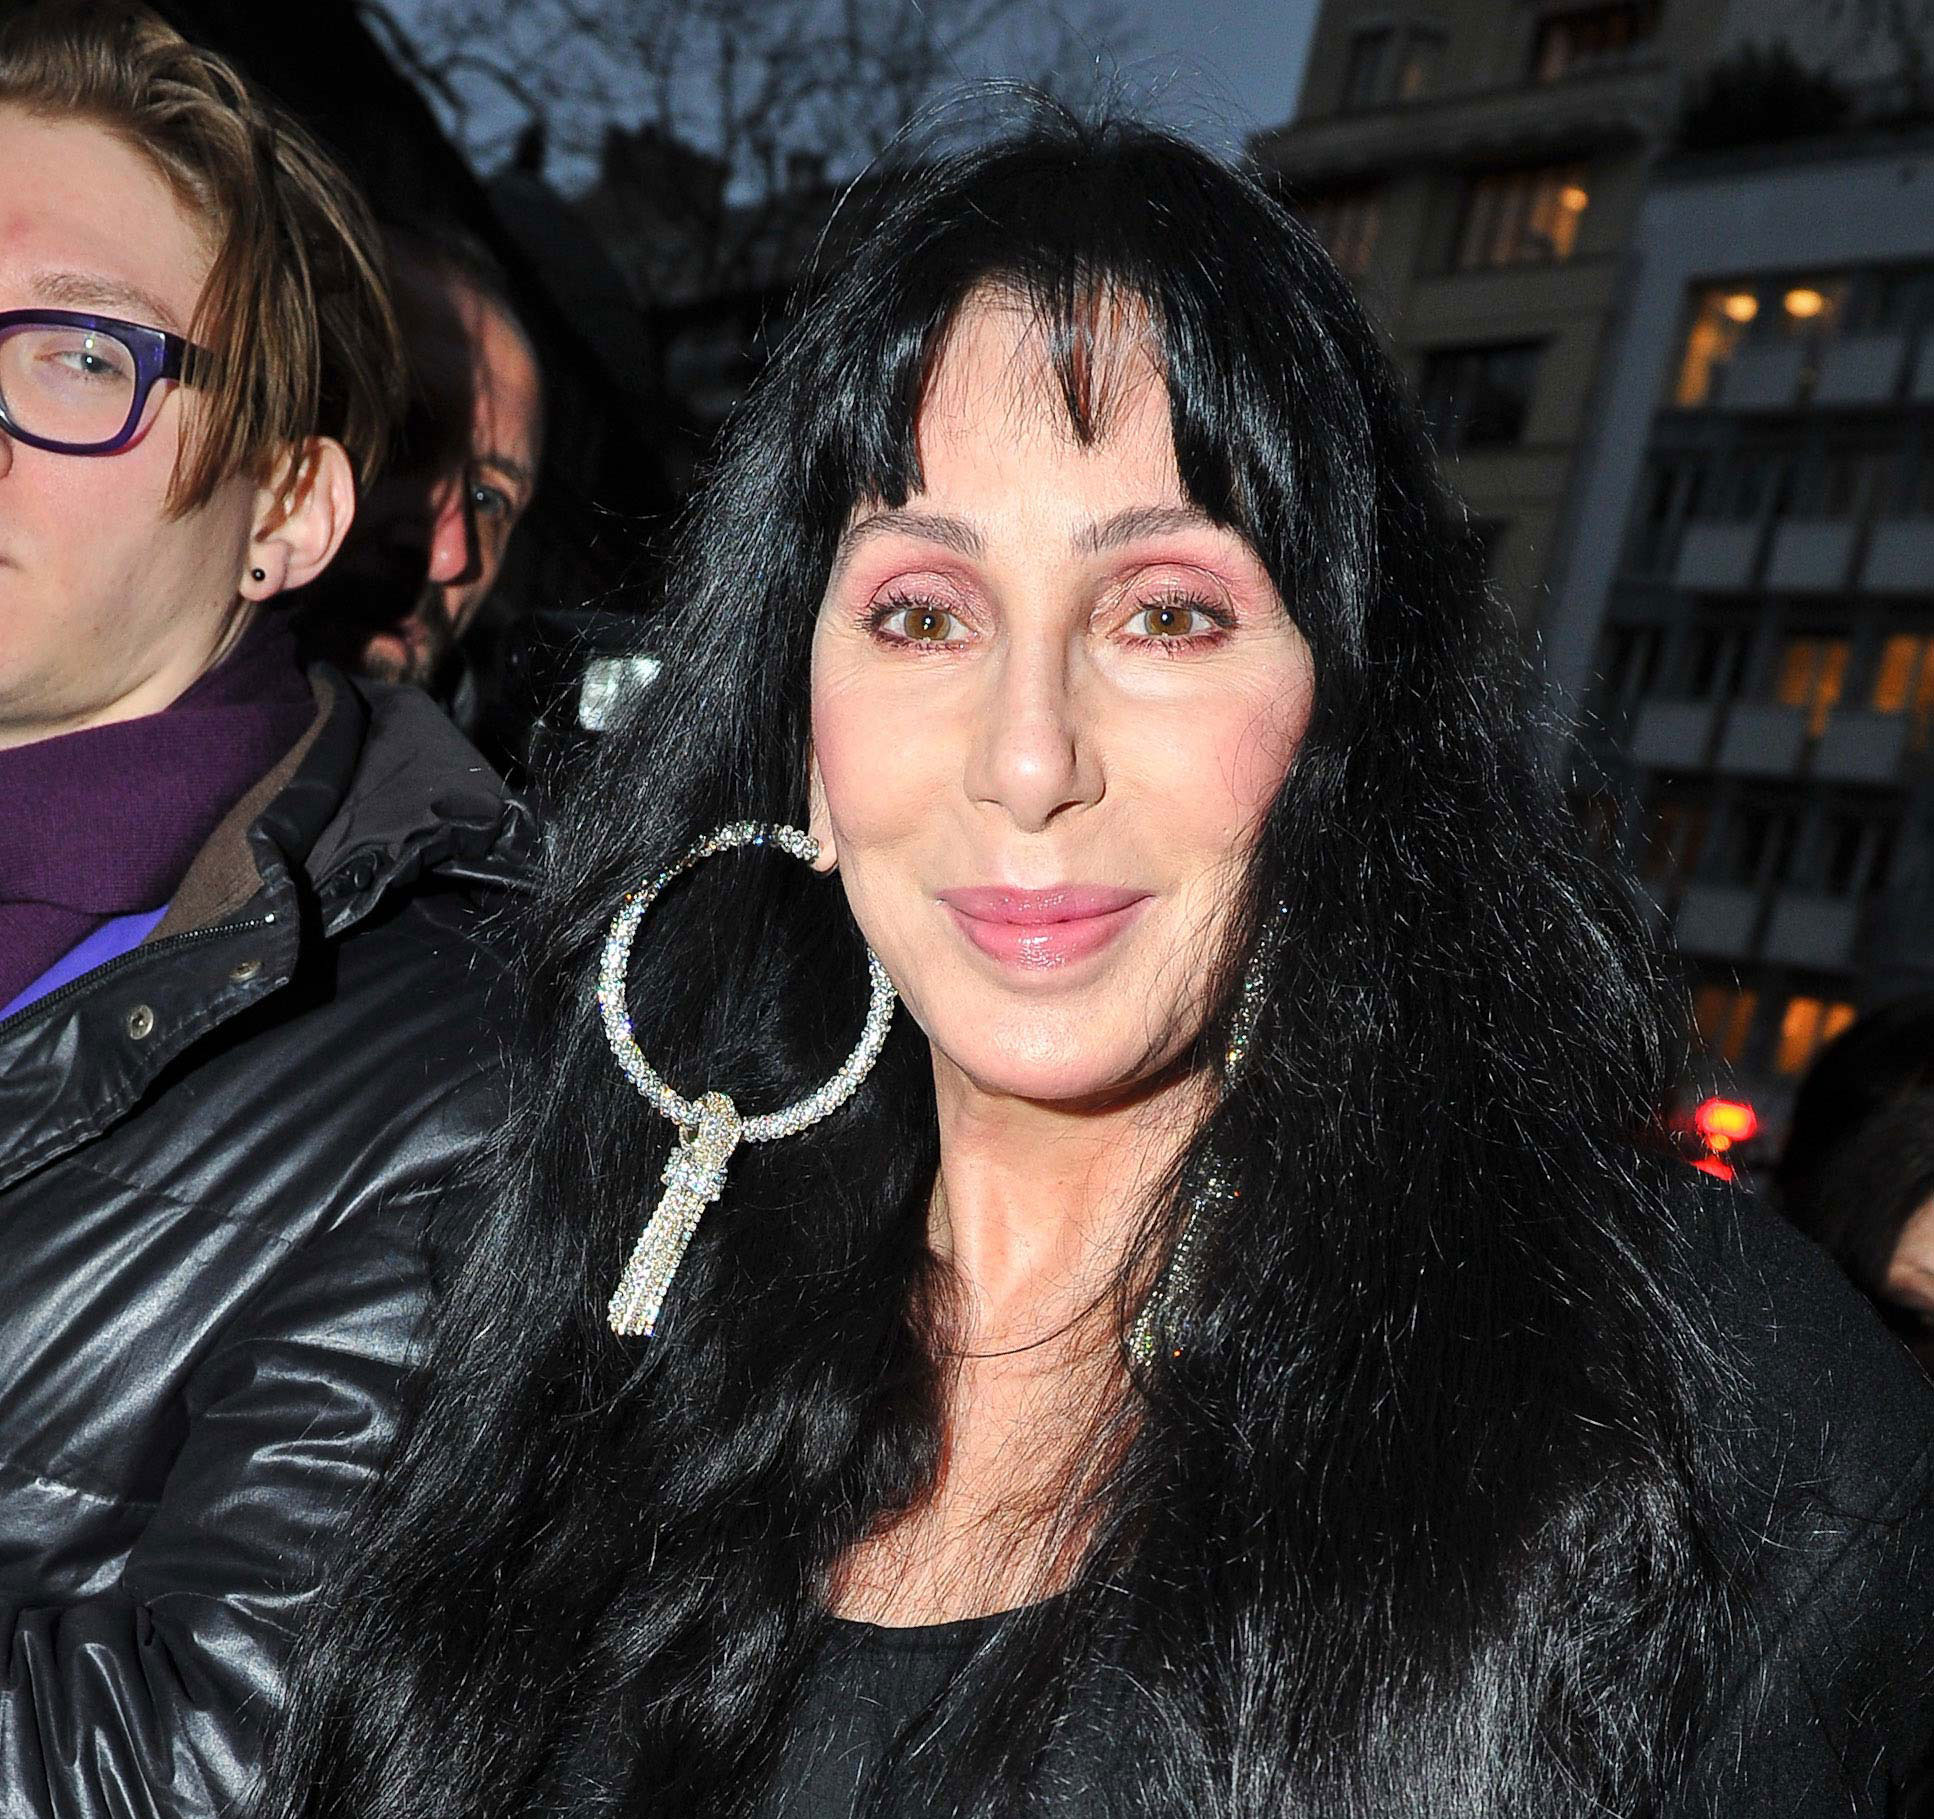 cherparisfashion10 Cher at Paris Fashion Week, Announces Album Release September